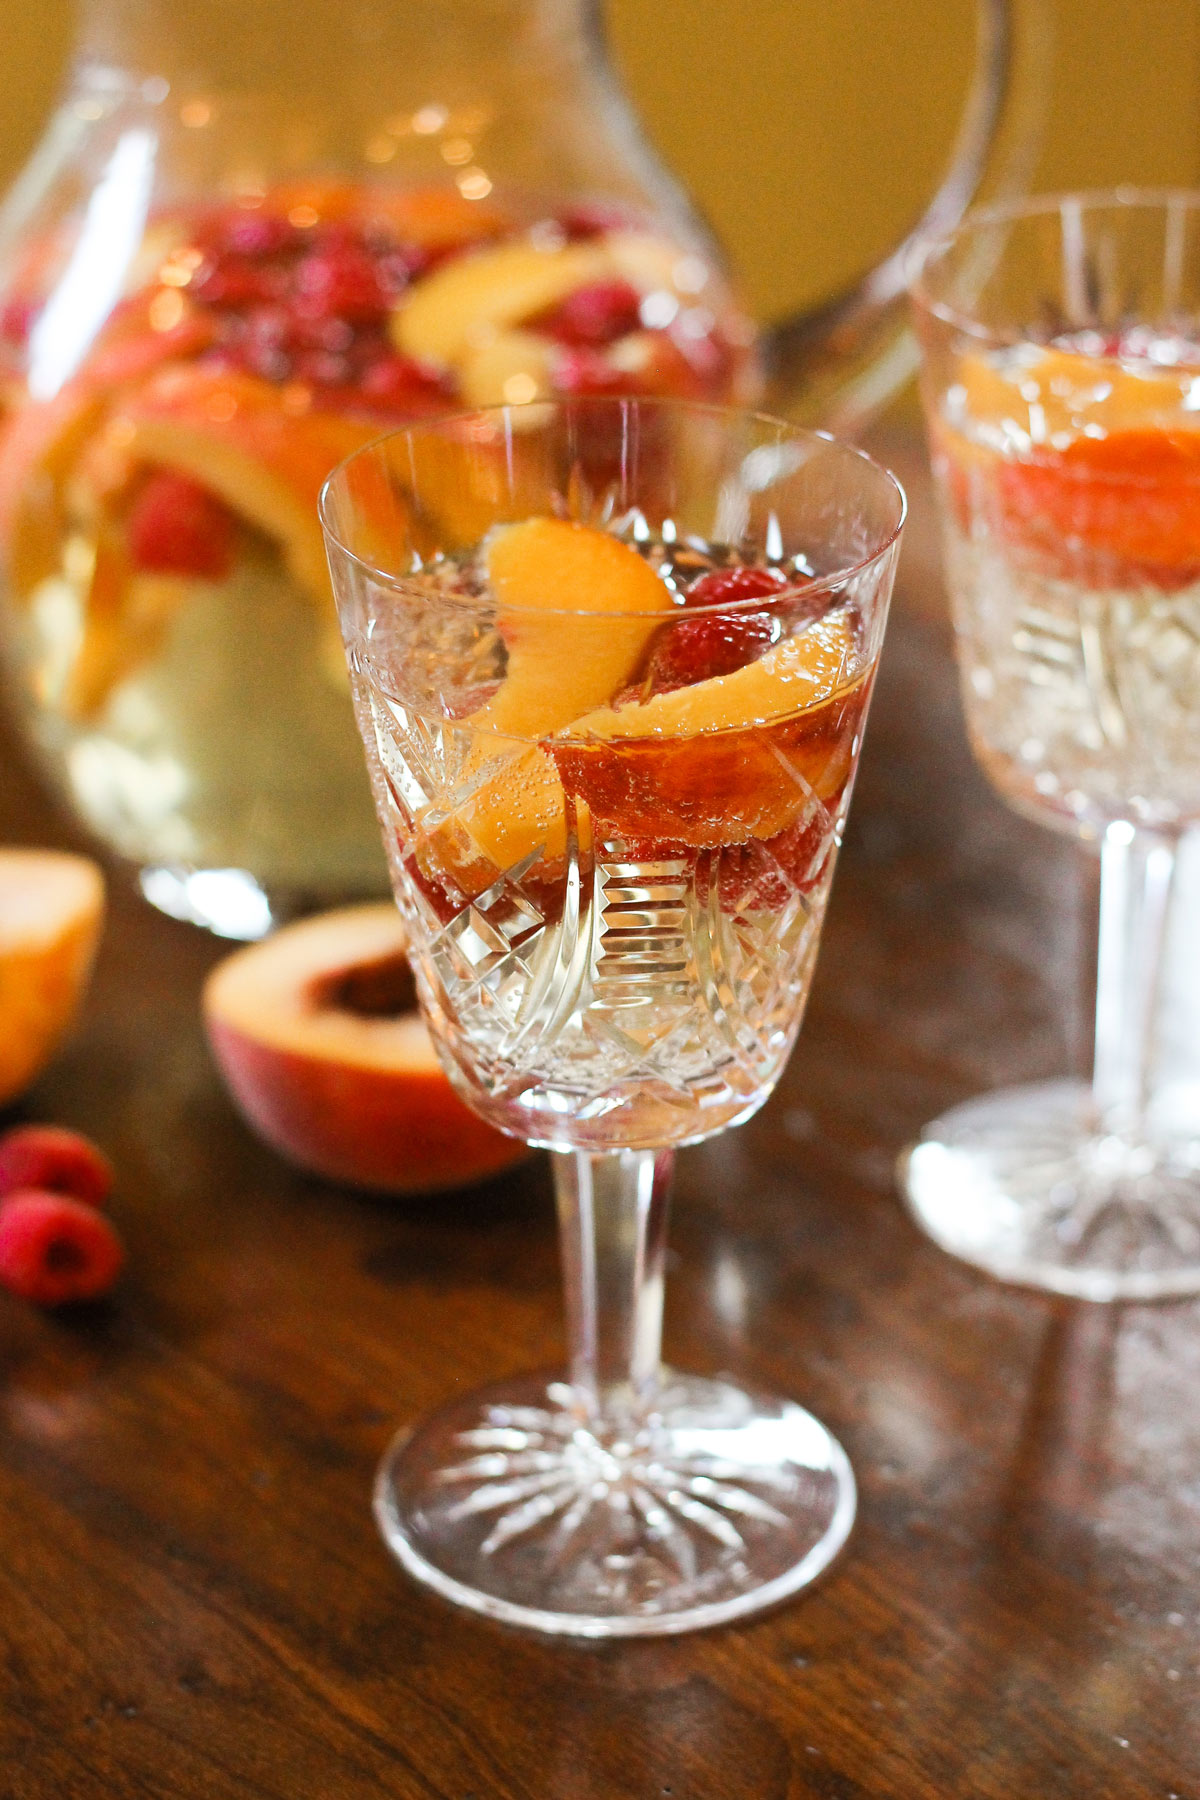 Cup of sparkling peach sangria